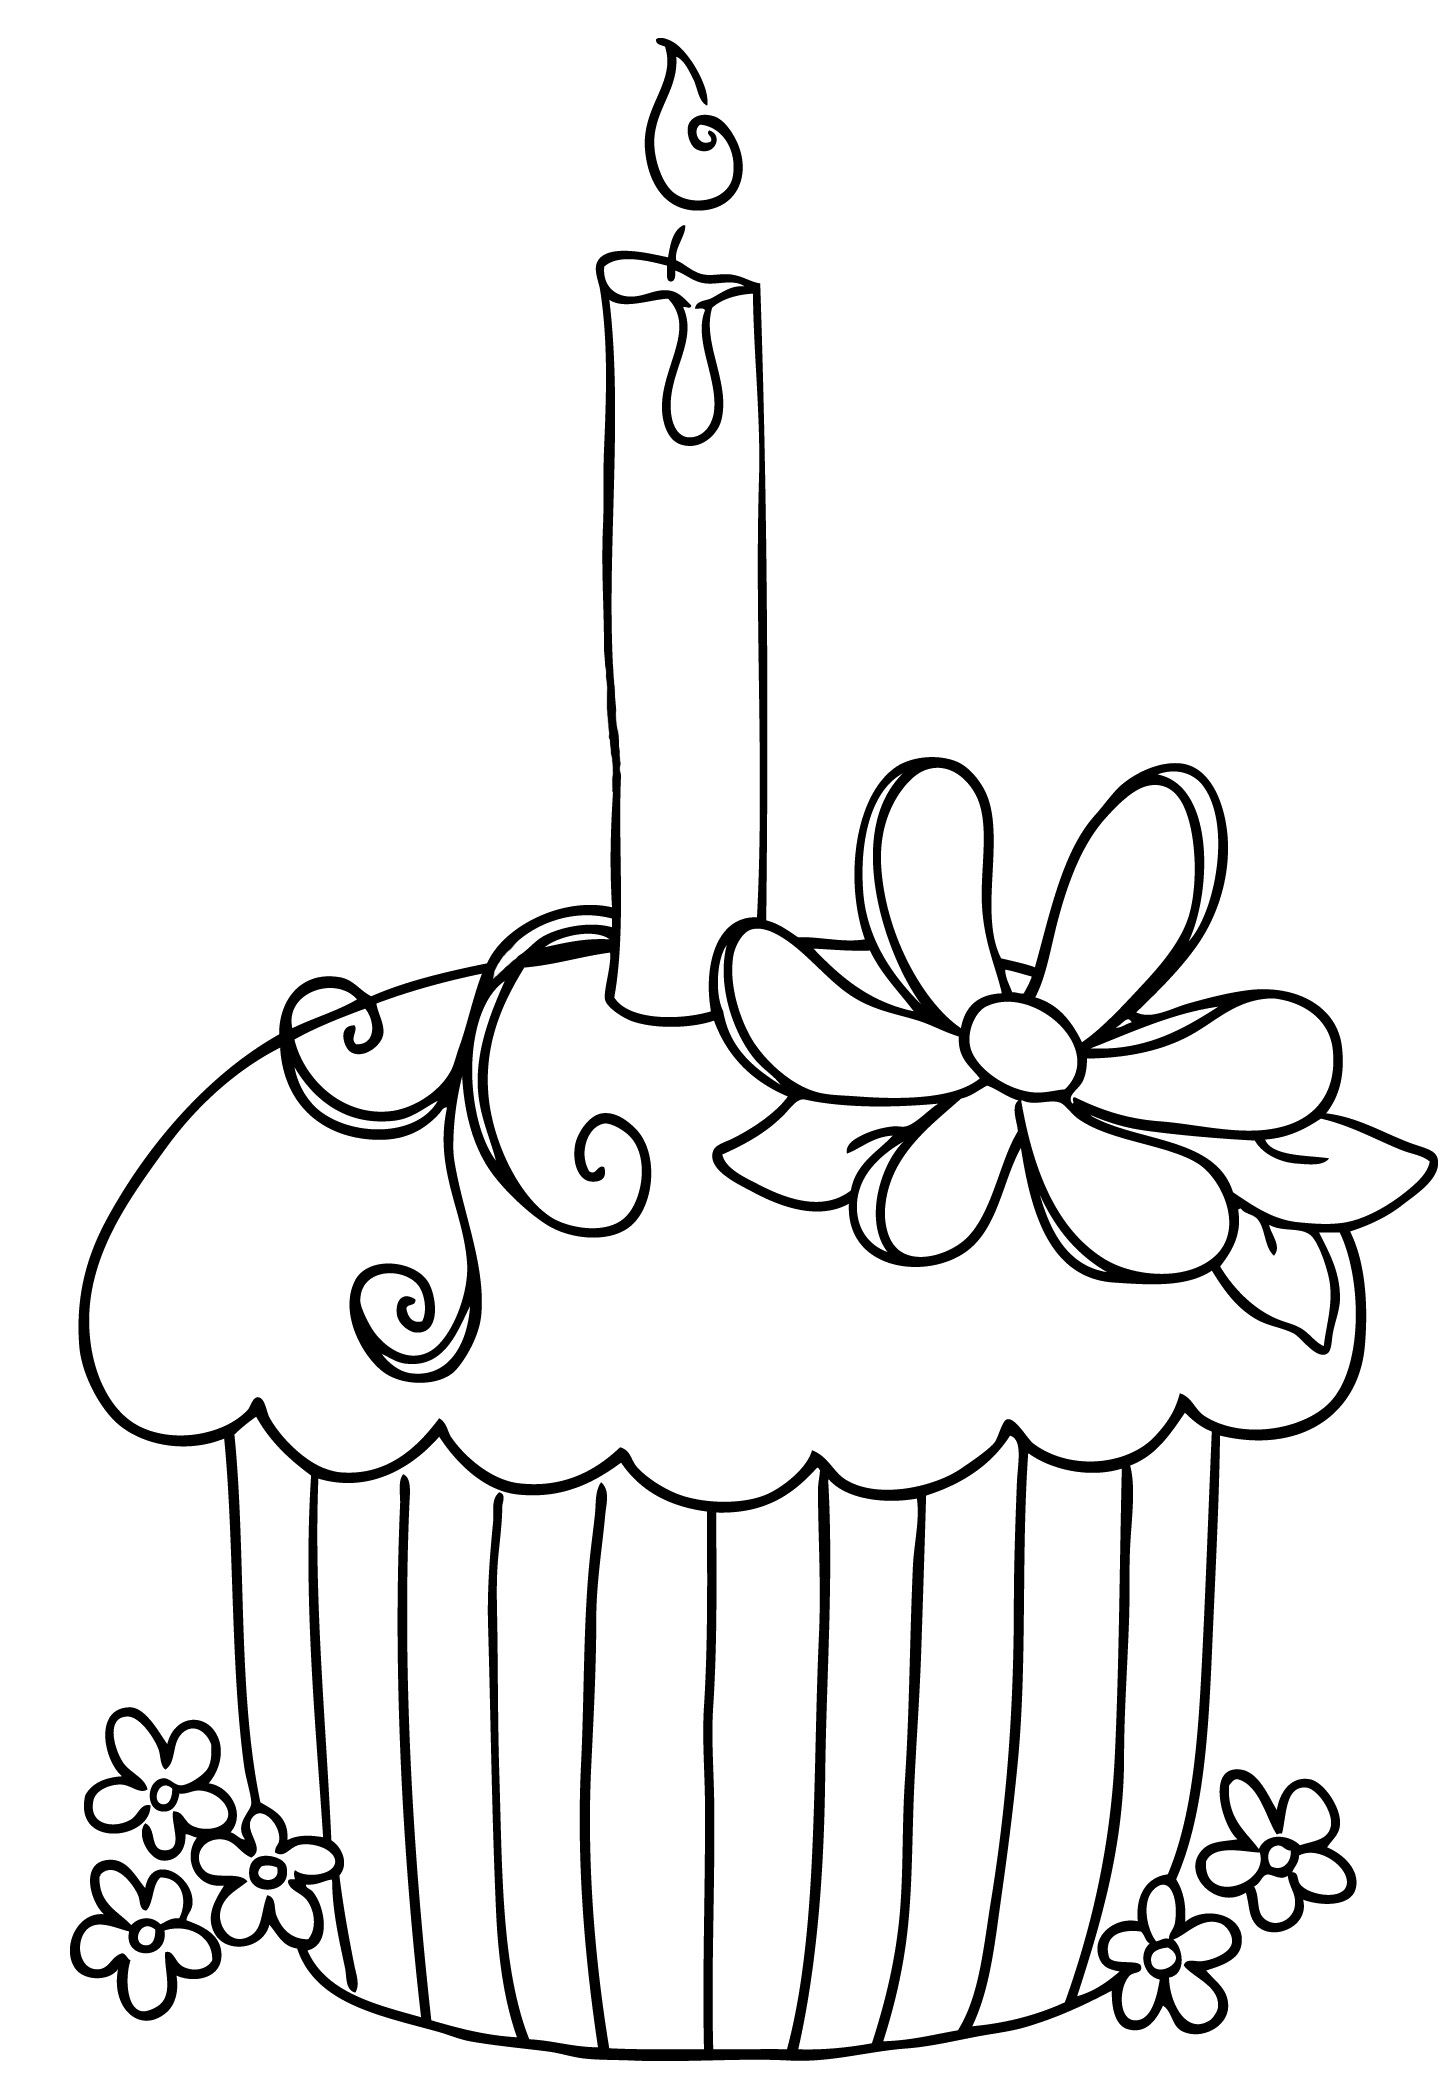 Cupcake with candle coloring pages birthday preschool theme